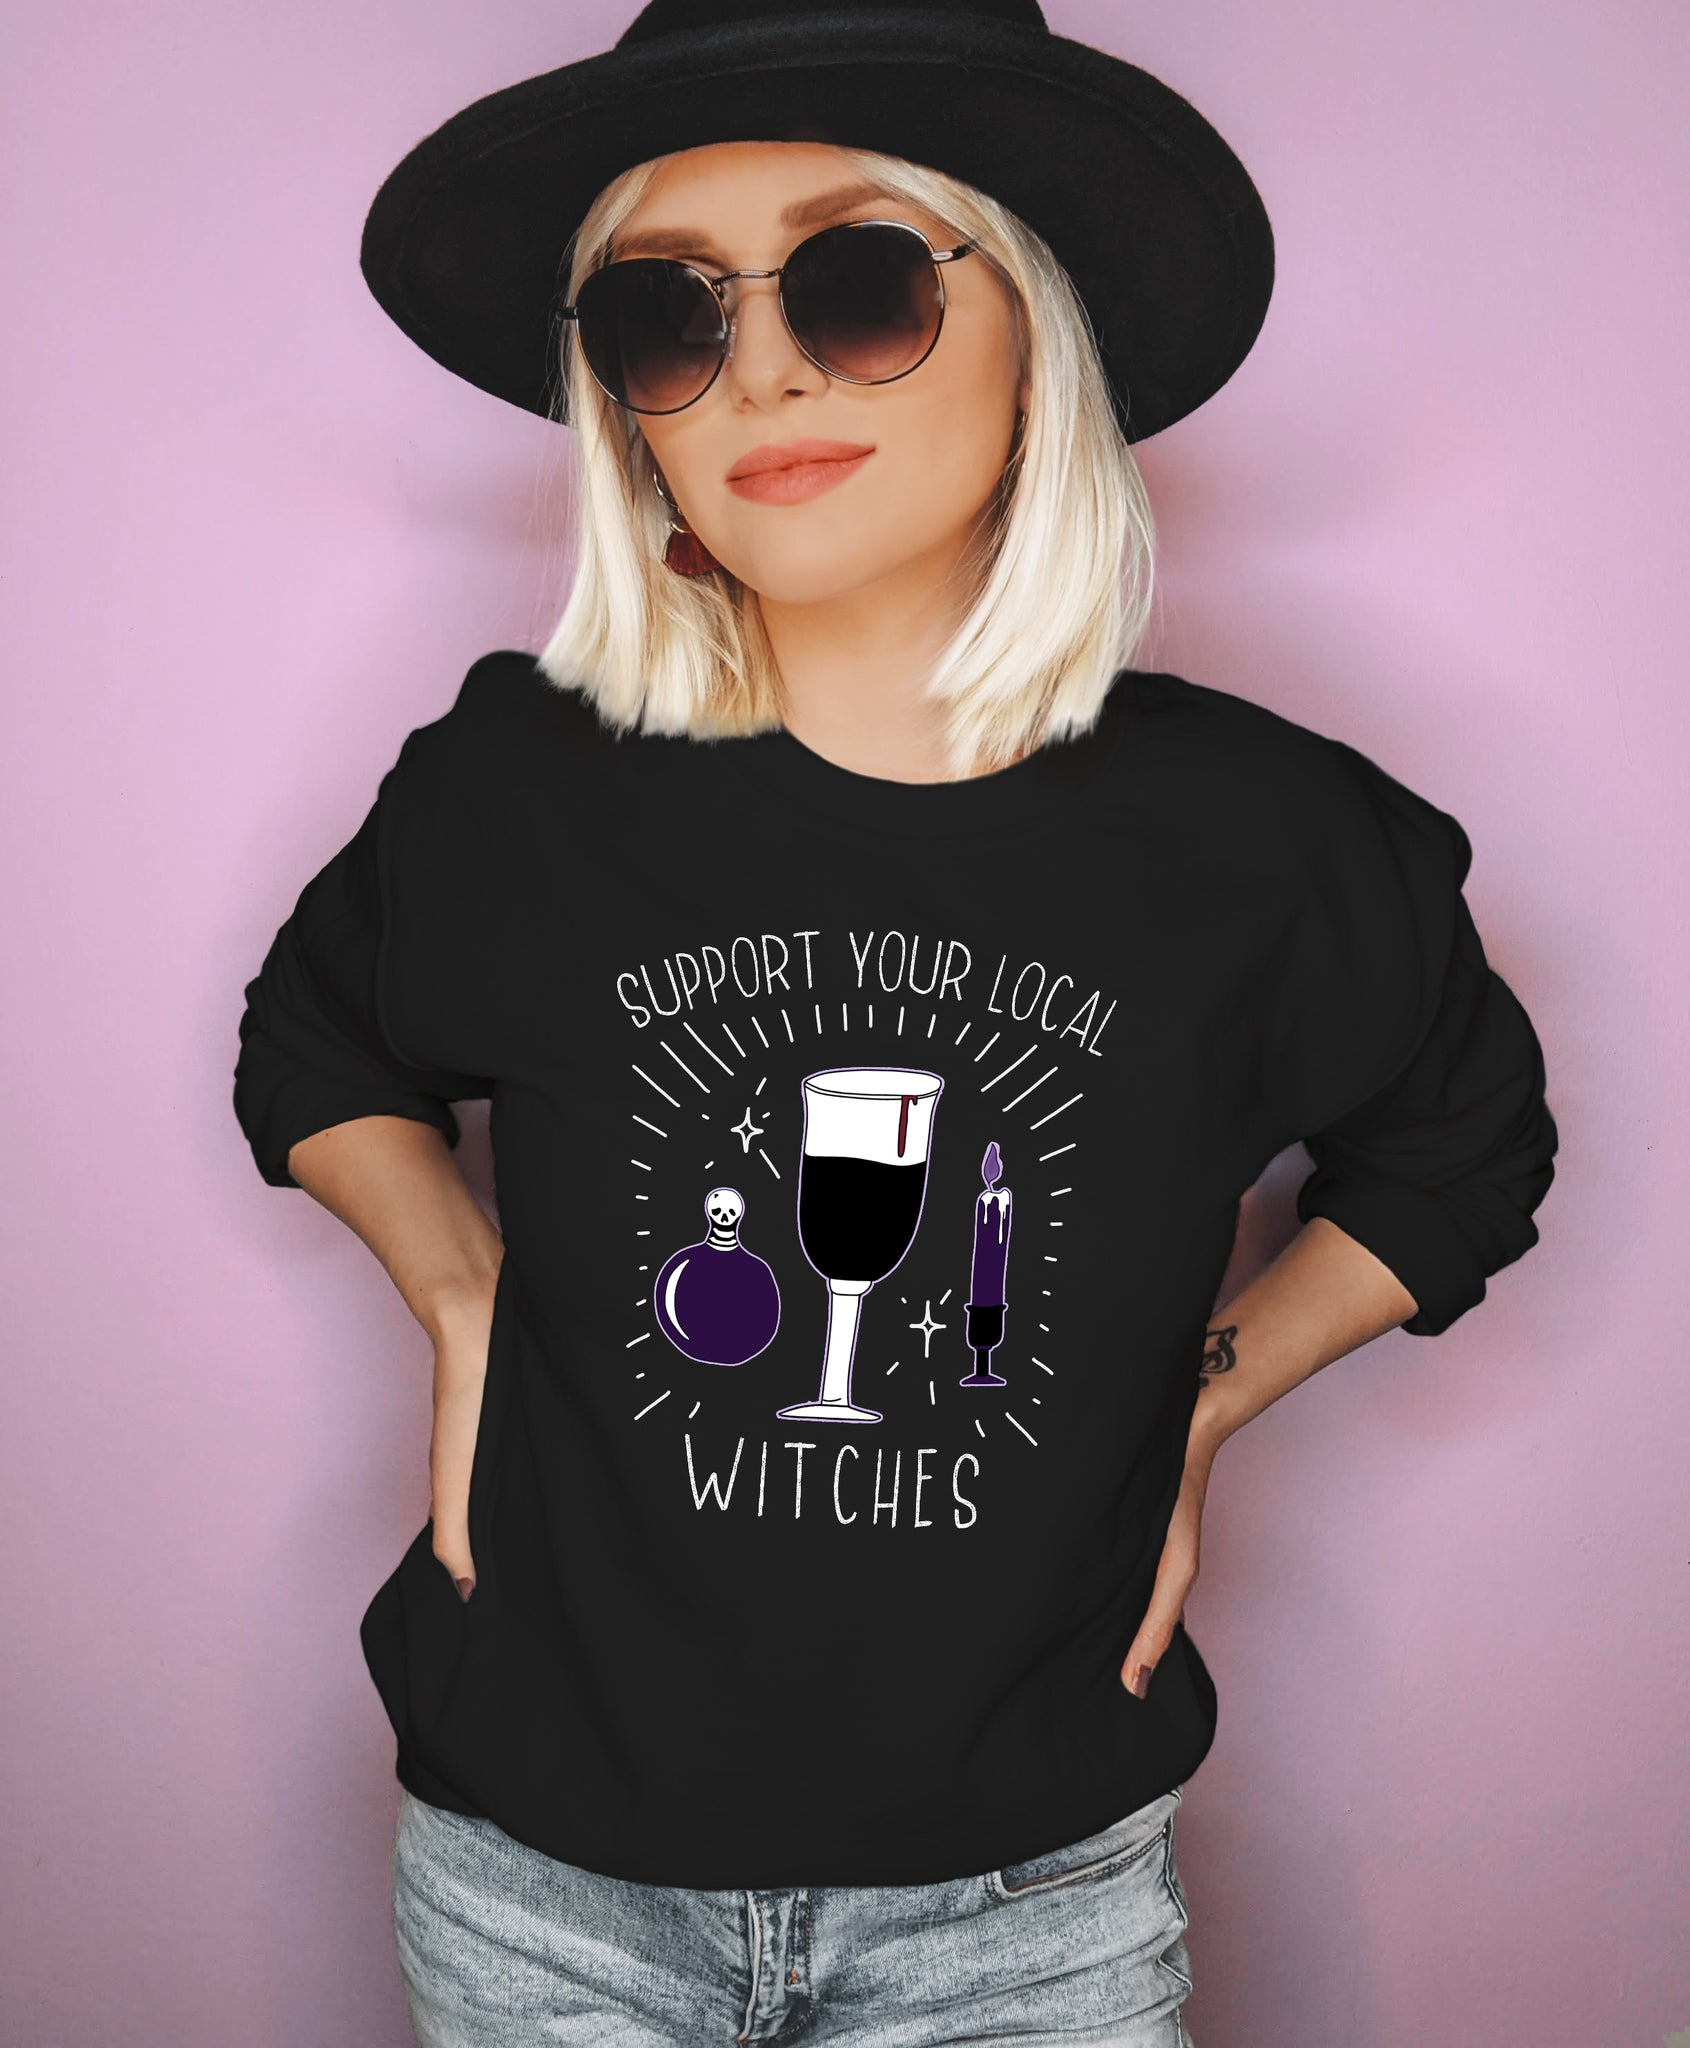 Black sweatshirt saying support your local witches - HighCiti